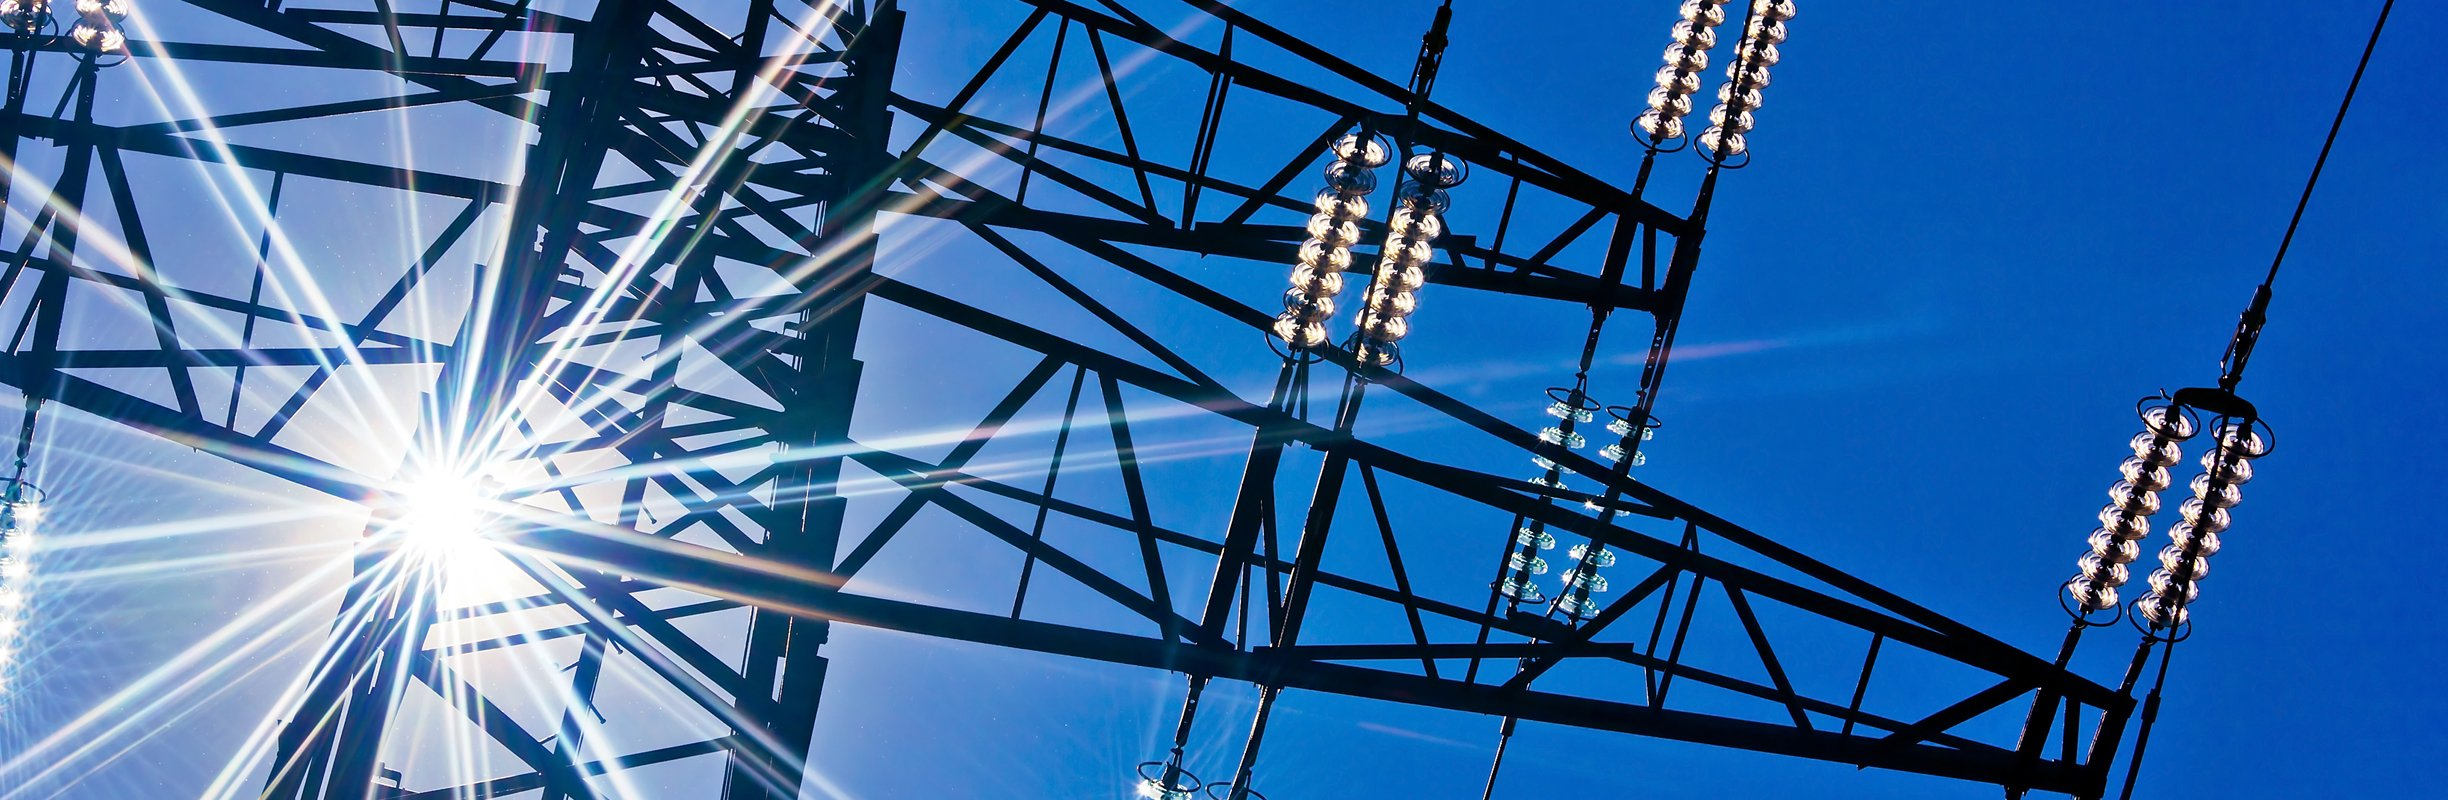 power-industry-protected-by-dehn_1